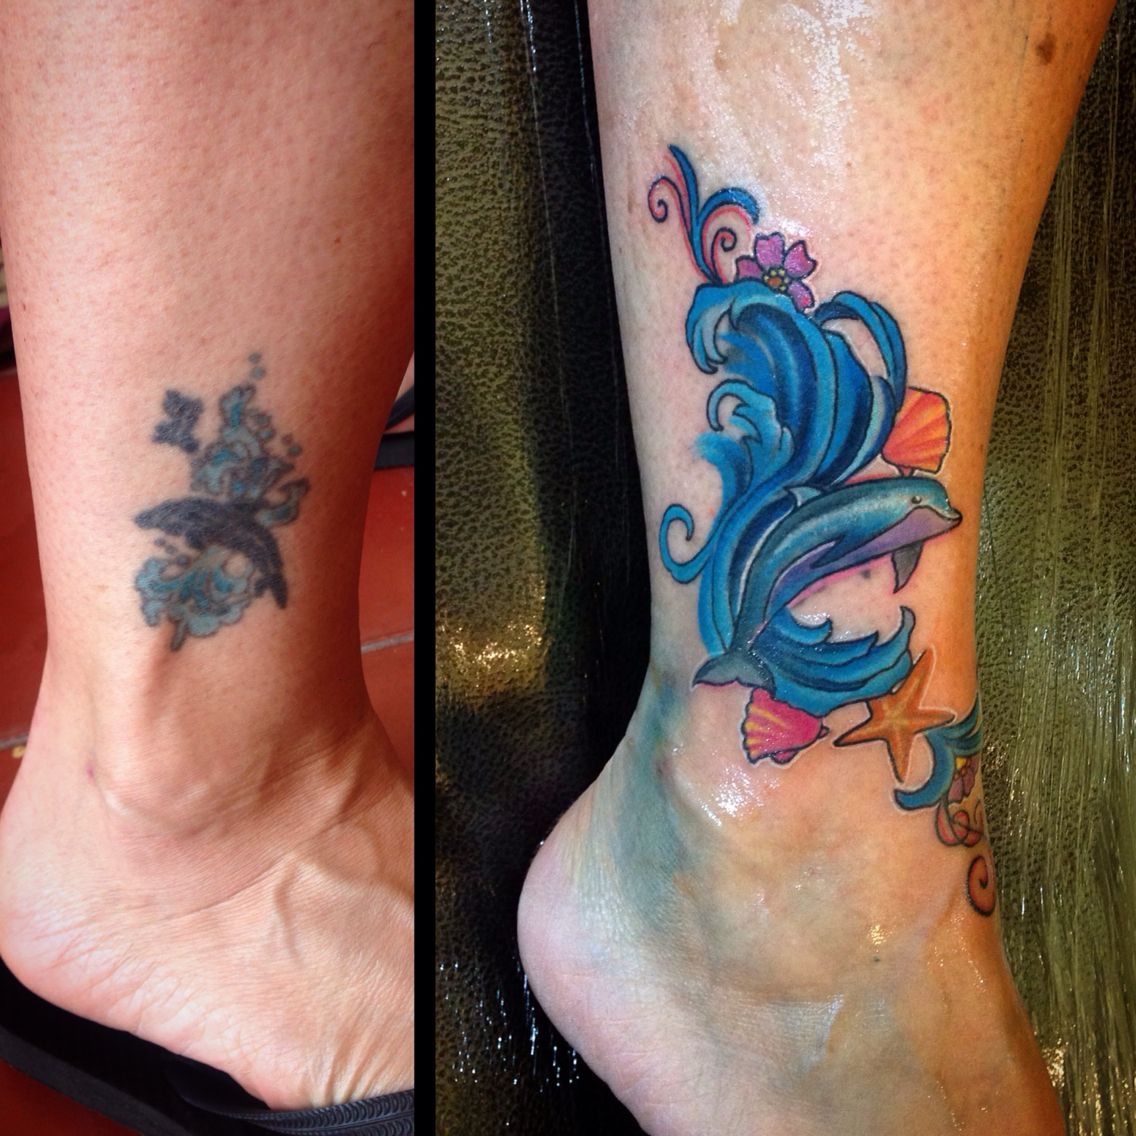 Before And After Dolphin Tattoo Fixed By Our Resident Artist Aura